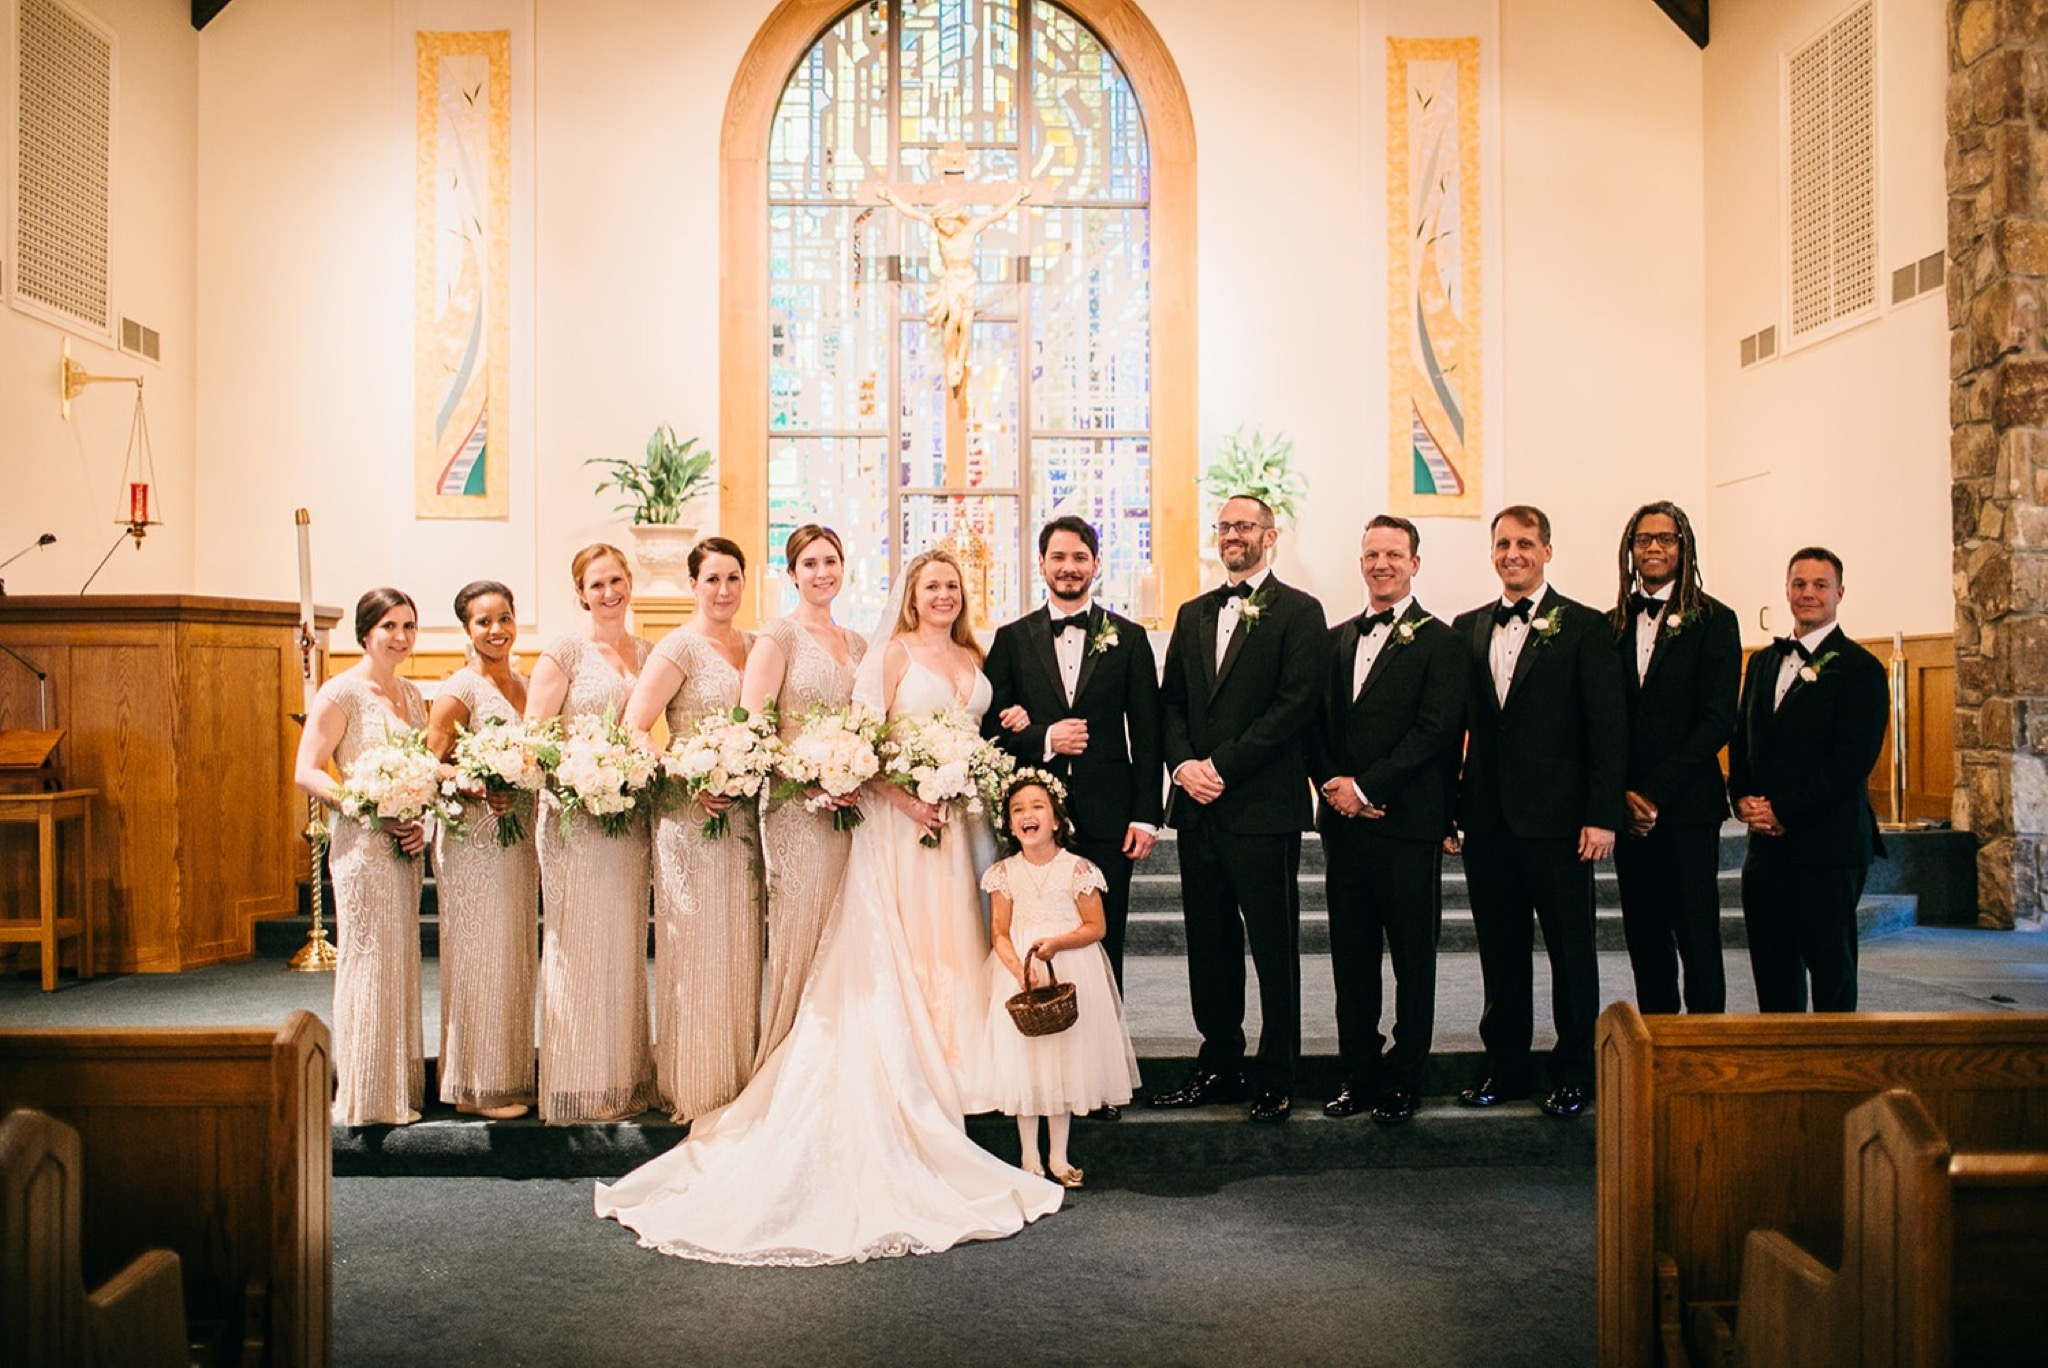 bridal party stands at the altar of Our Lady of the Mount Catholic Church near Chattanooga, TN